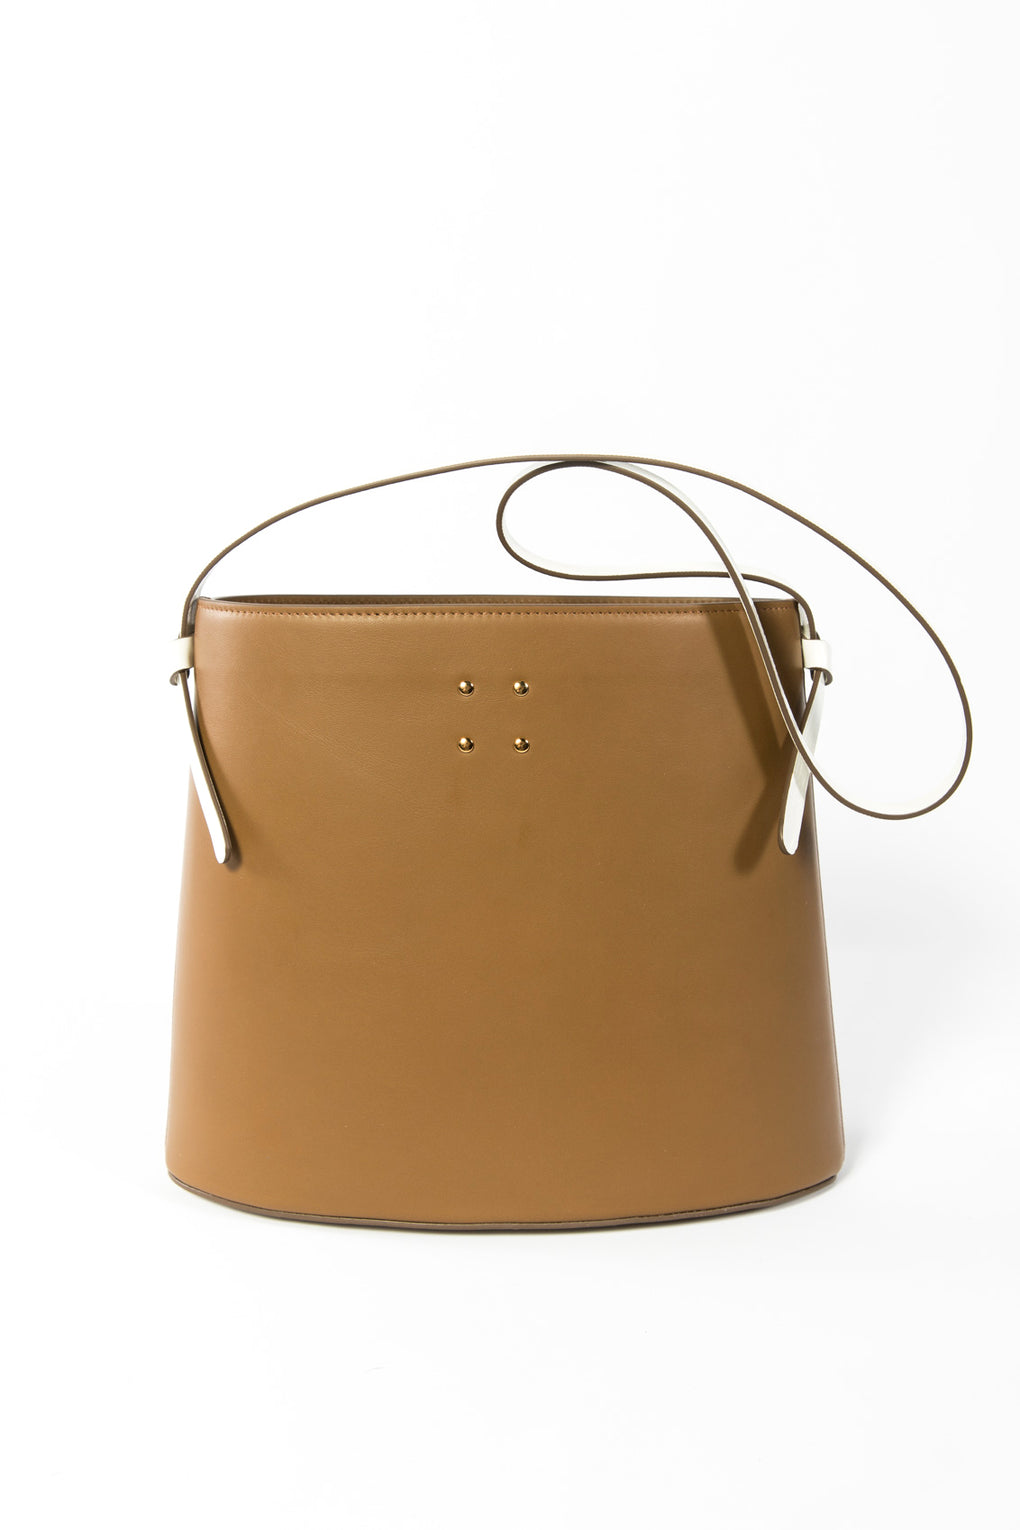 Sybil Leather Bag-Olive